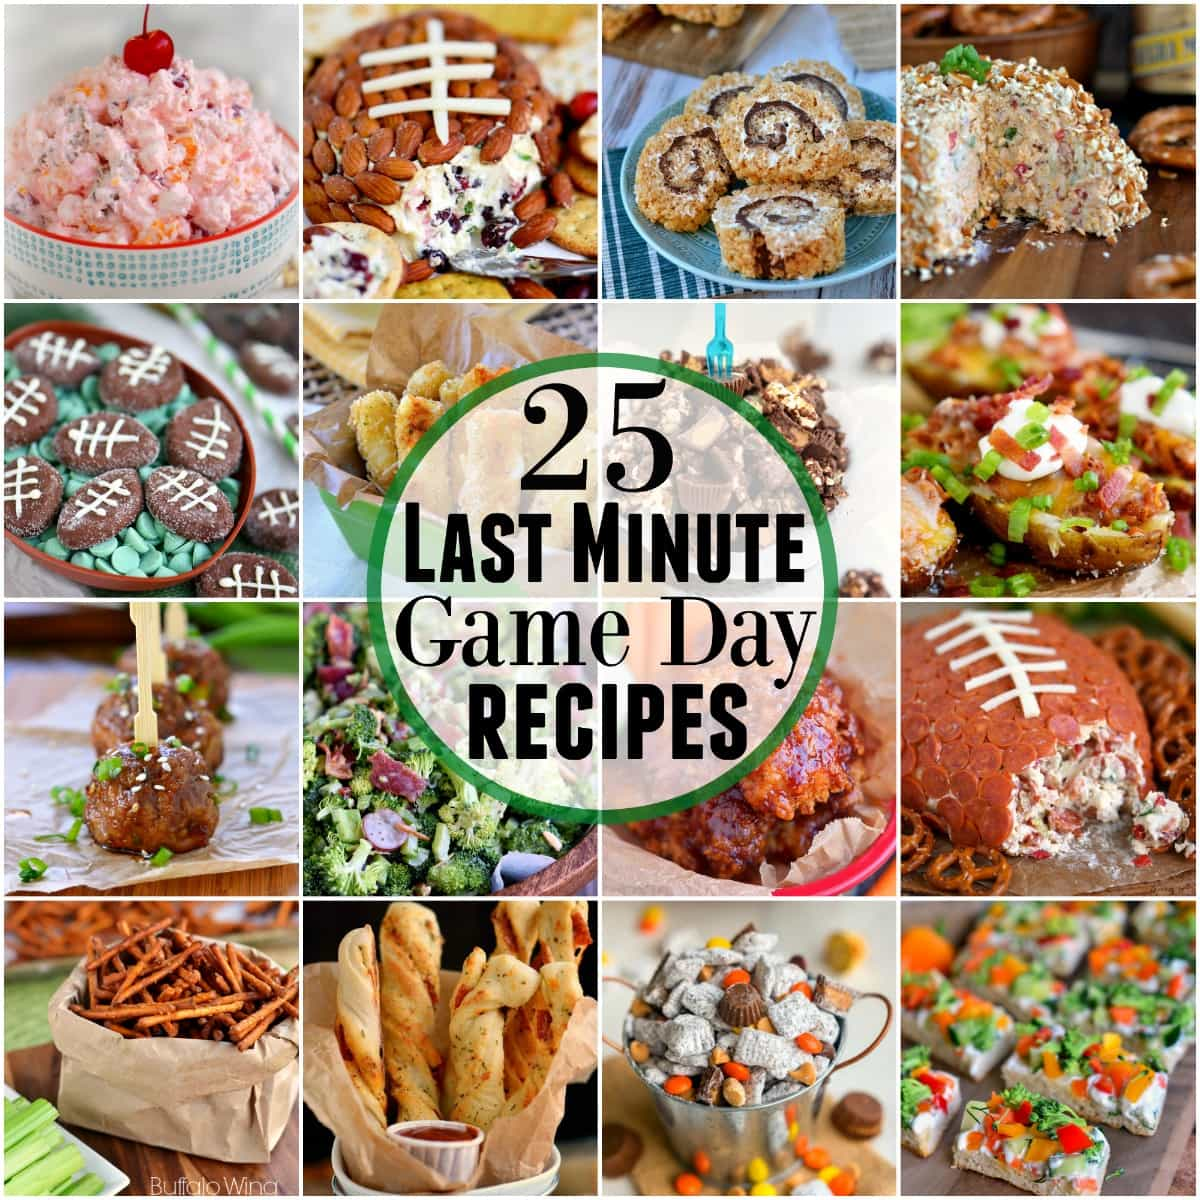 For those of you who procrastinate like I do - 25 Last Minute Game Day Recipes that require minimal ingredients and time! Sweets, savory, snacks - you'll find it all here!